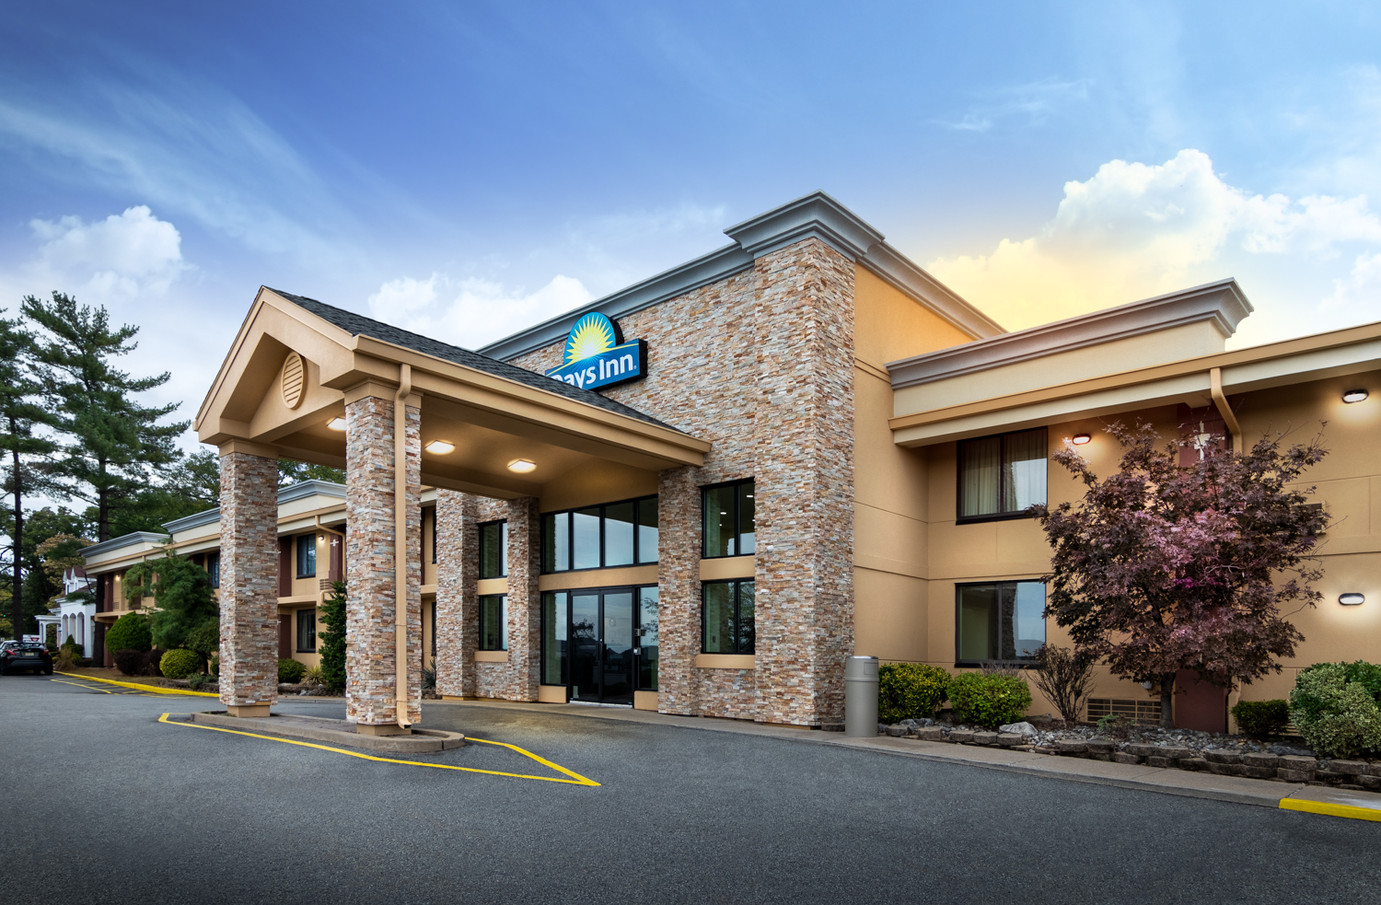 Days Inn Photoshoot-3.jpg